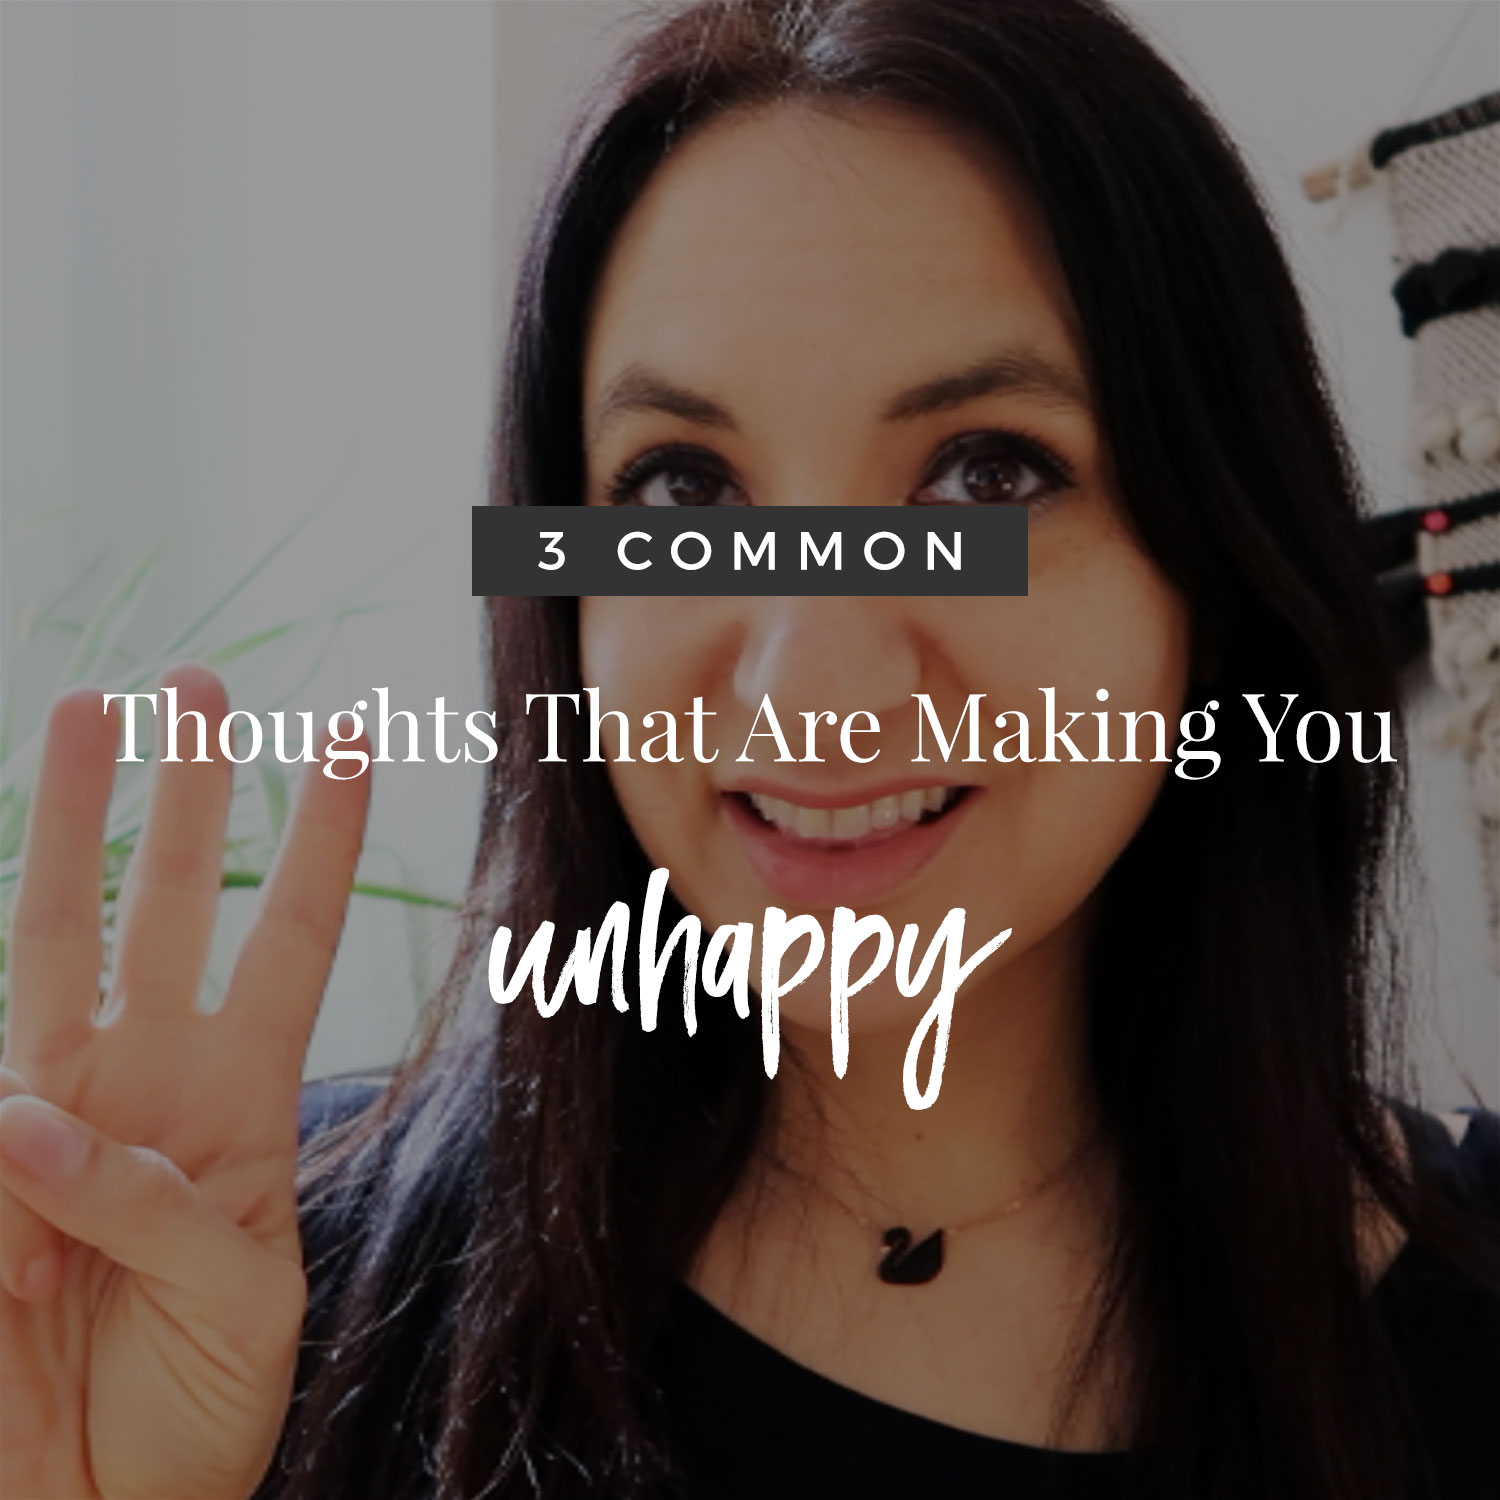 3 Common Thoughts That Are Making You Unhappy